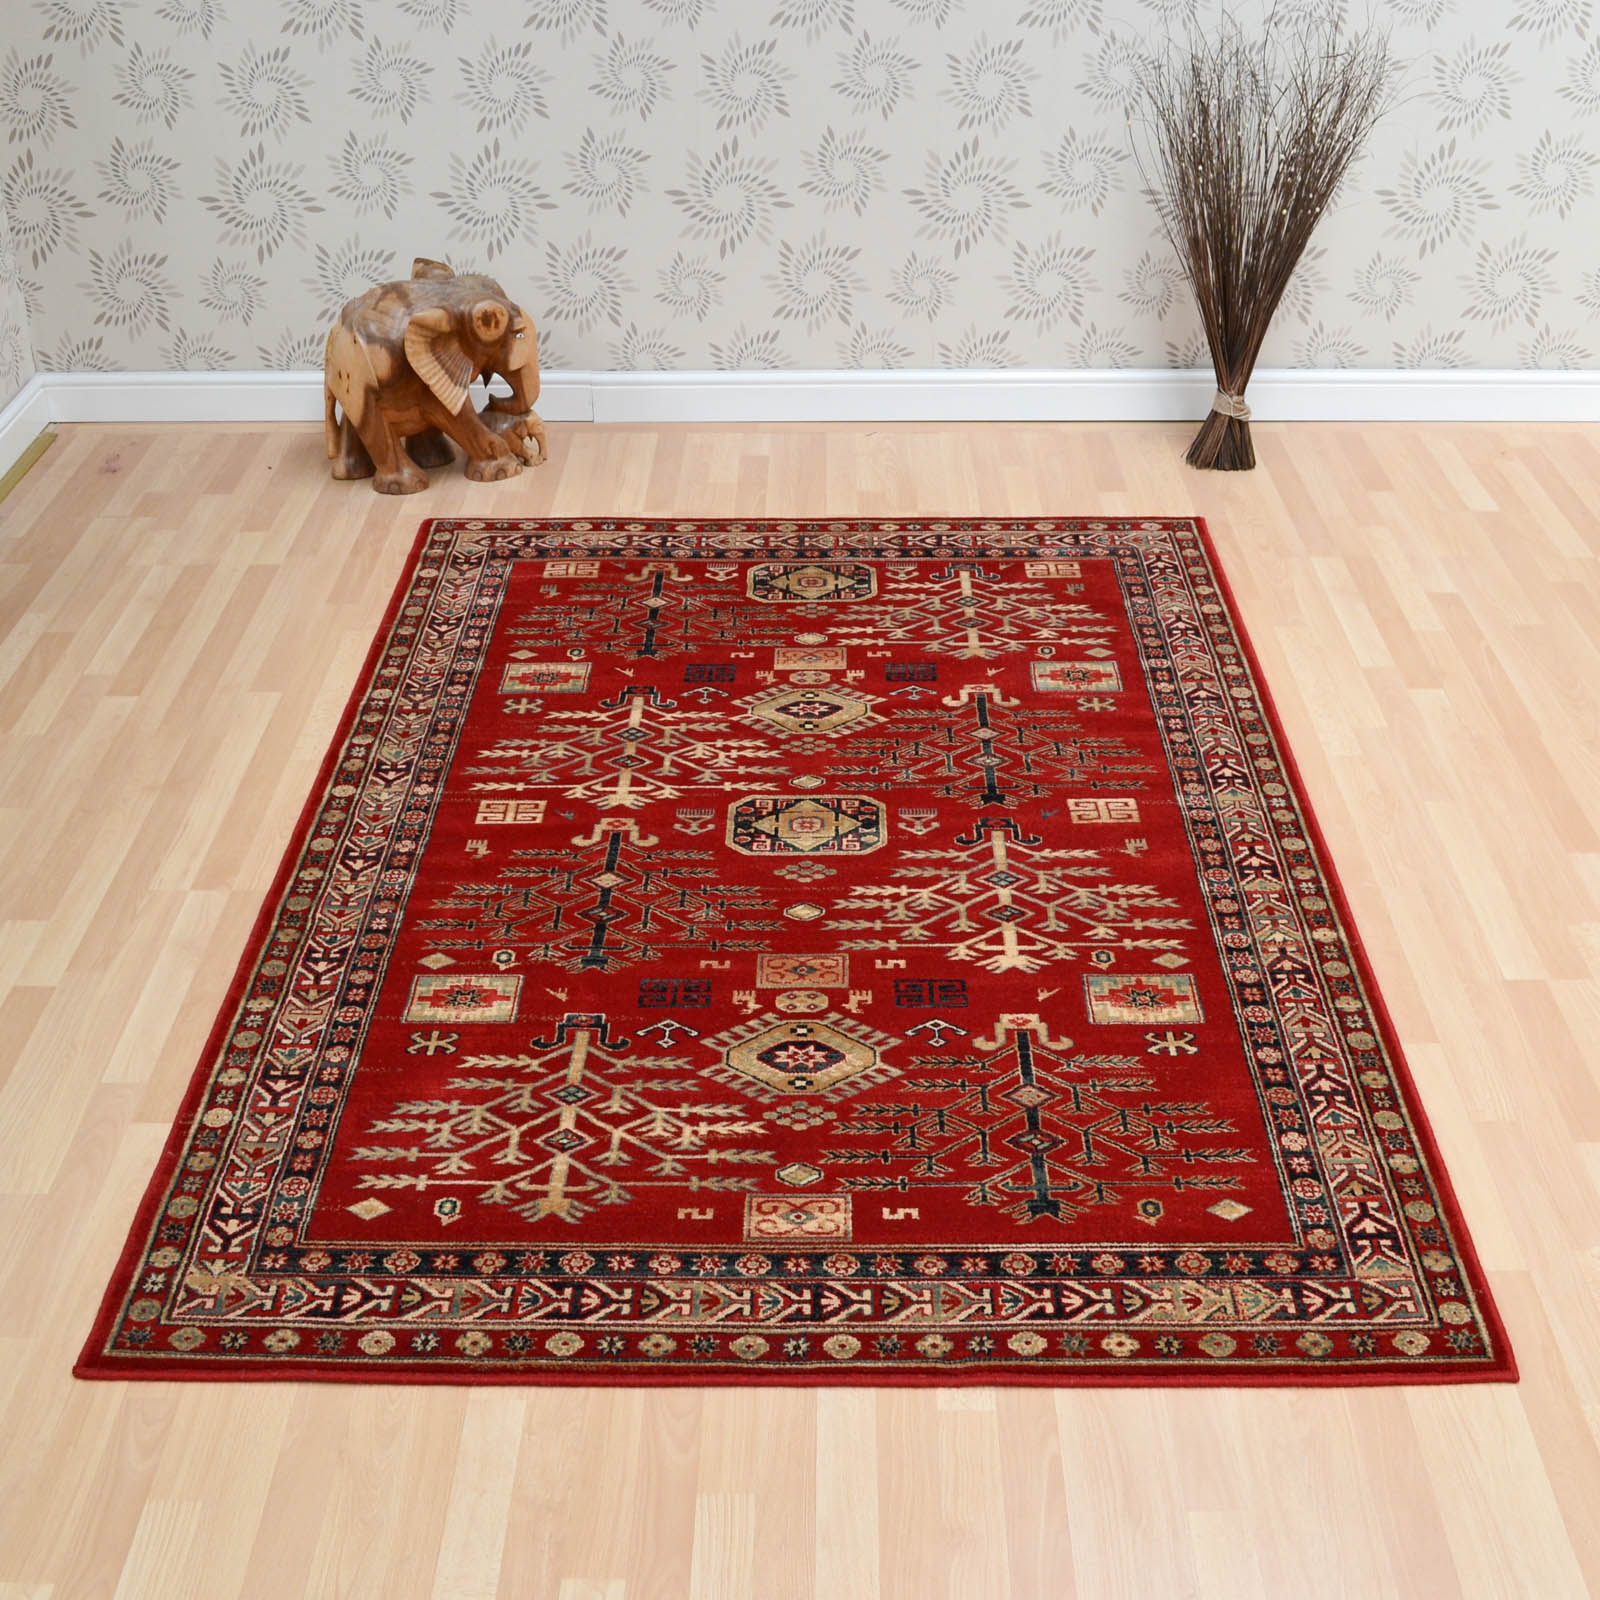 Woburn Kazak Rugs in Terracotta